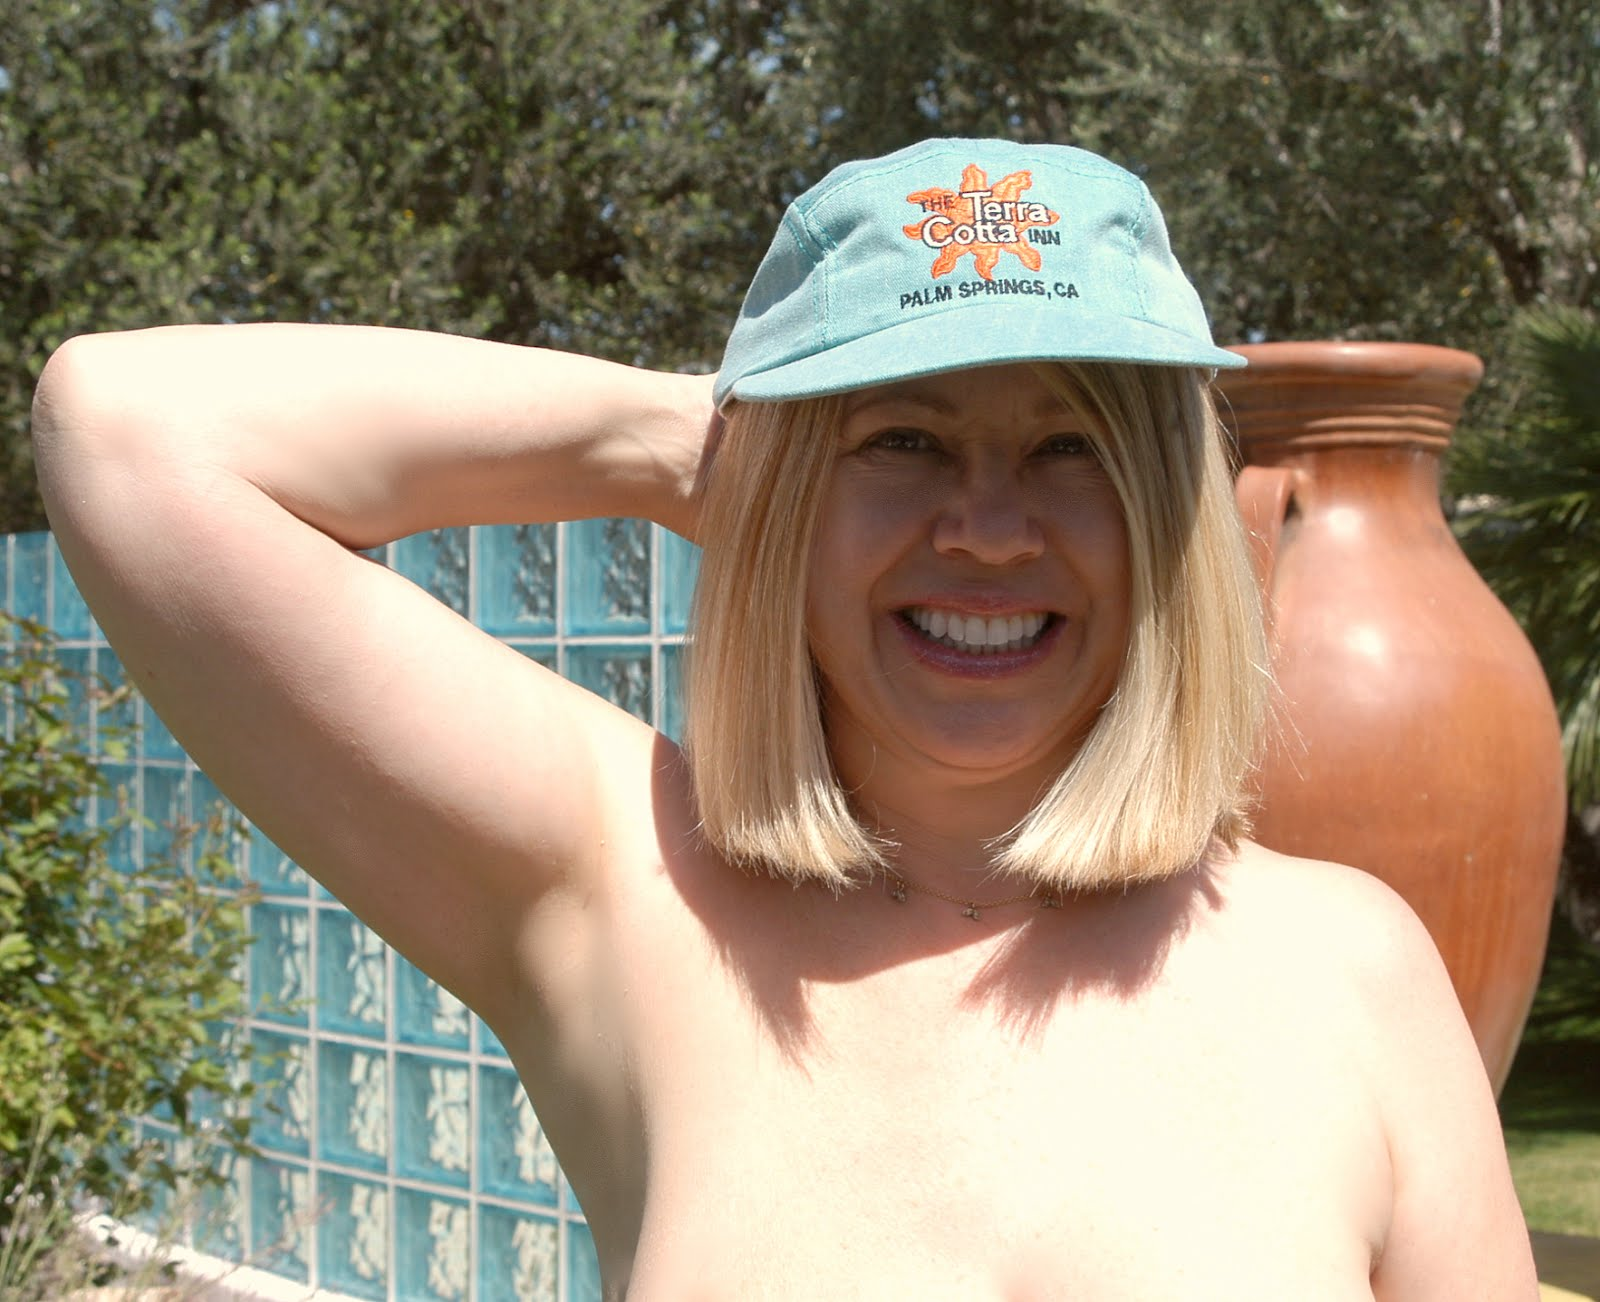 Nude swinger resorts in palm springs california photo 376